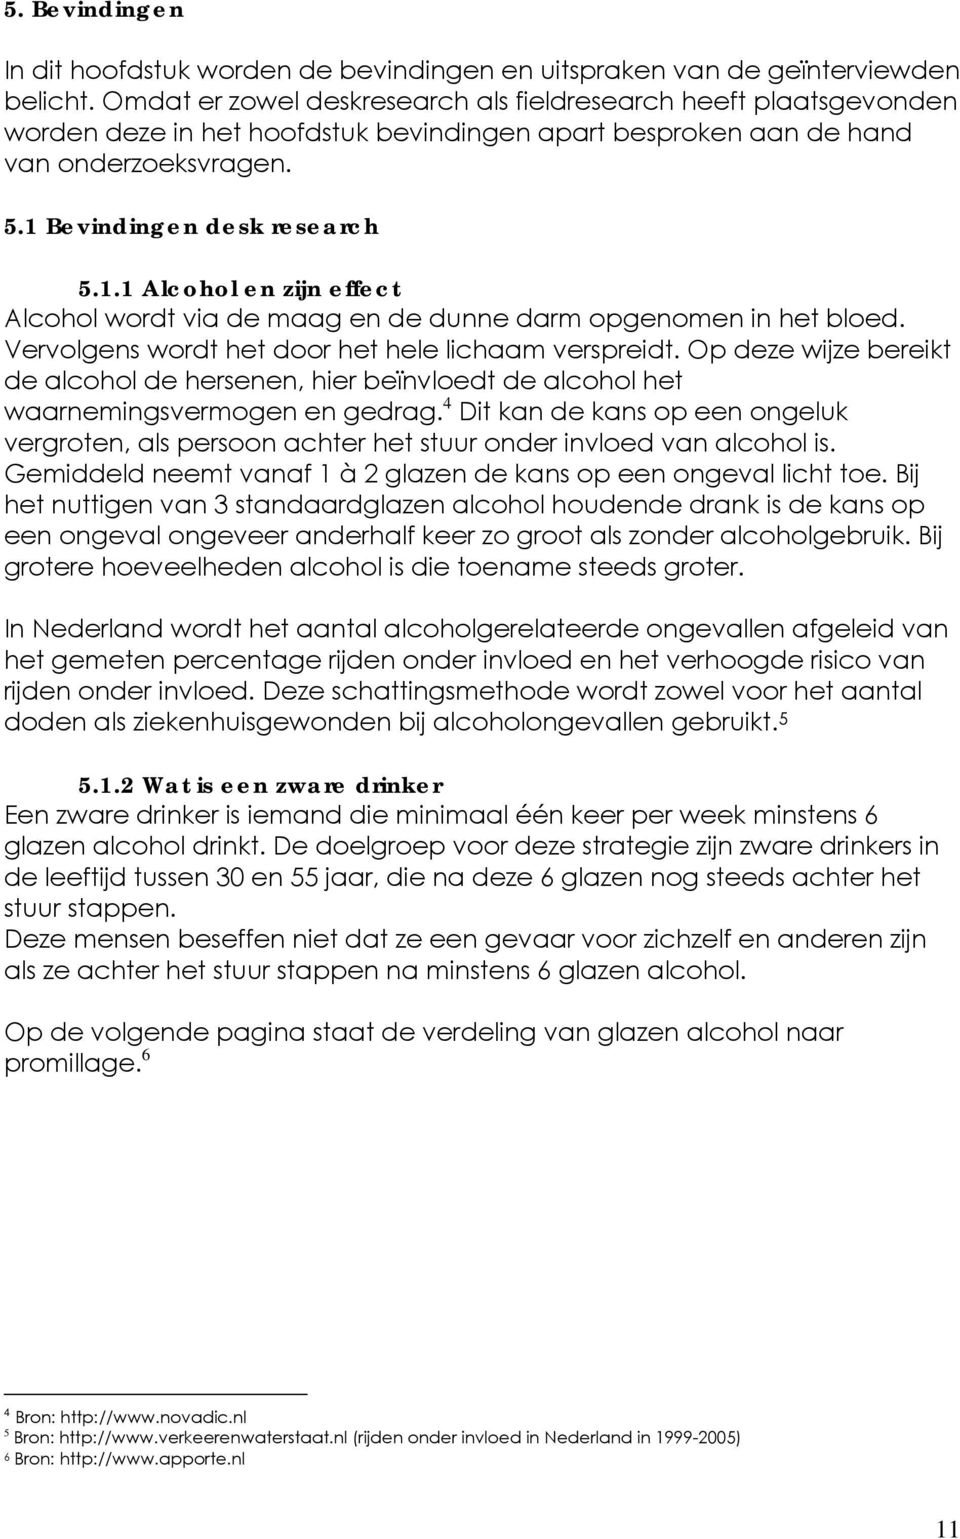 Bevindingen desk research 5.1.1 Alcohol en zijn effect Alcohol wordt via de maag en de dunne darm opgenomen in het bloed. Vervolgens wordt het door het hele lichaam verspreidt.